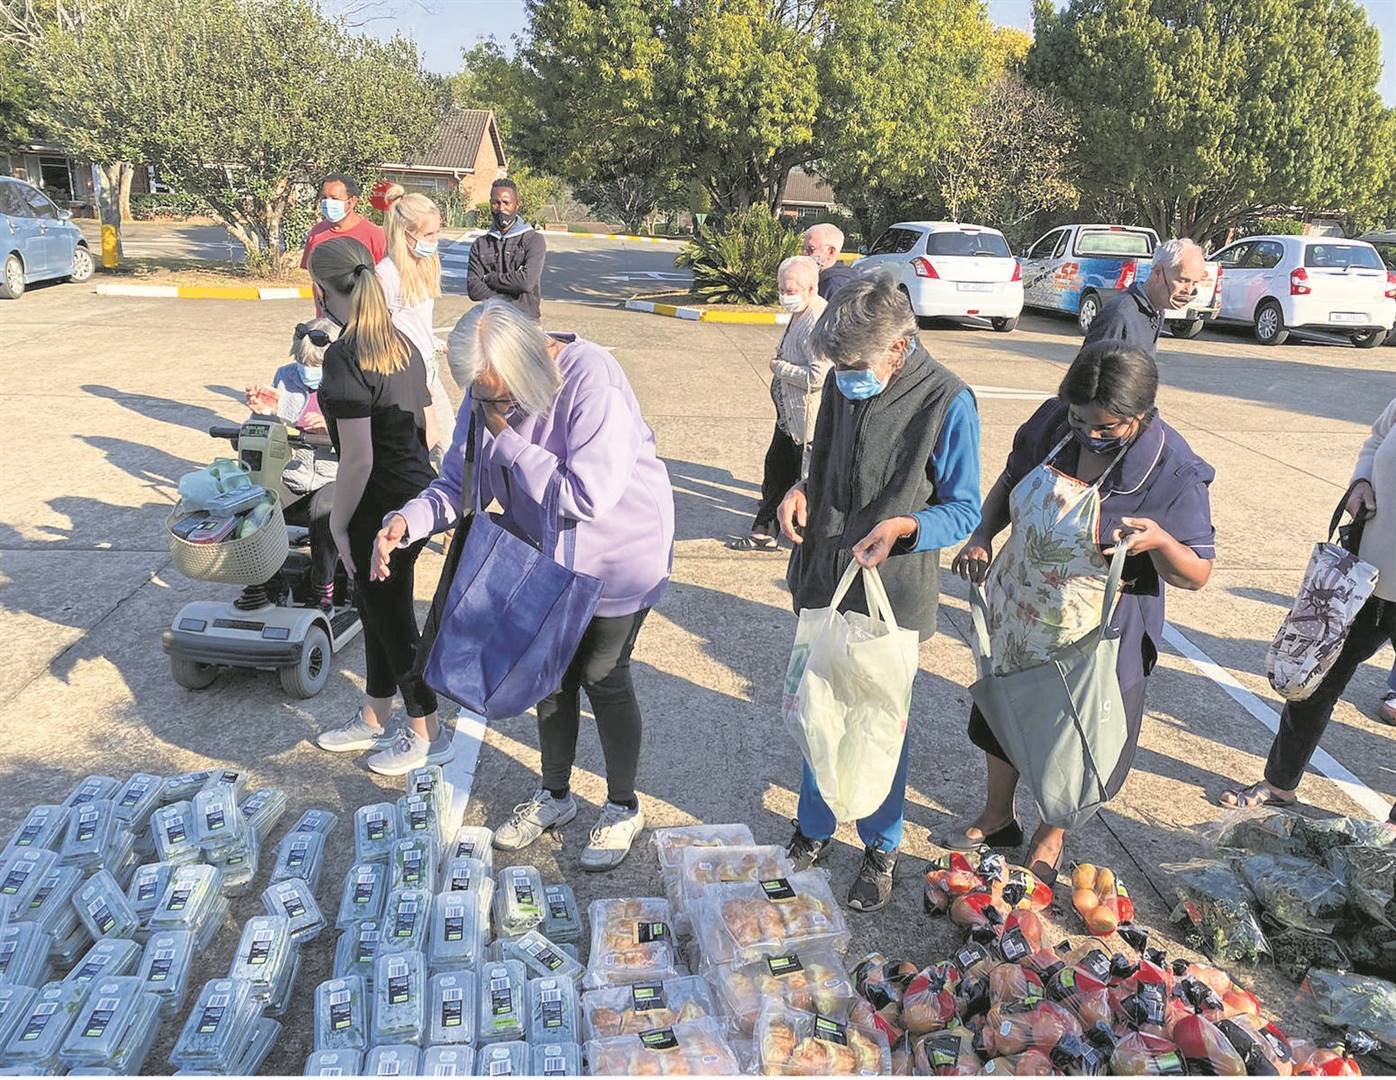 Residents from Amberfield Retirement Village were able to benefit from the Feeding Howick and the KZN Midlands project, which made food available to them in their parking area.